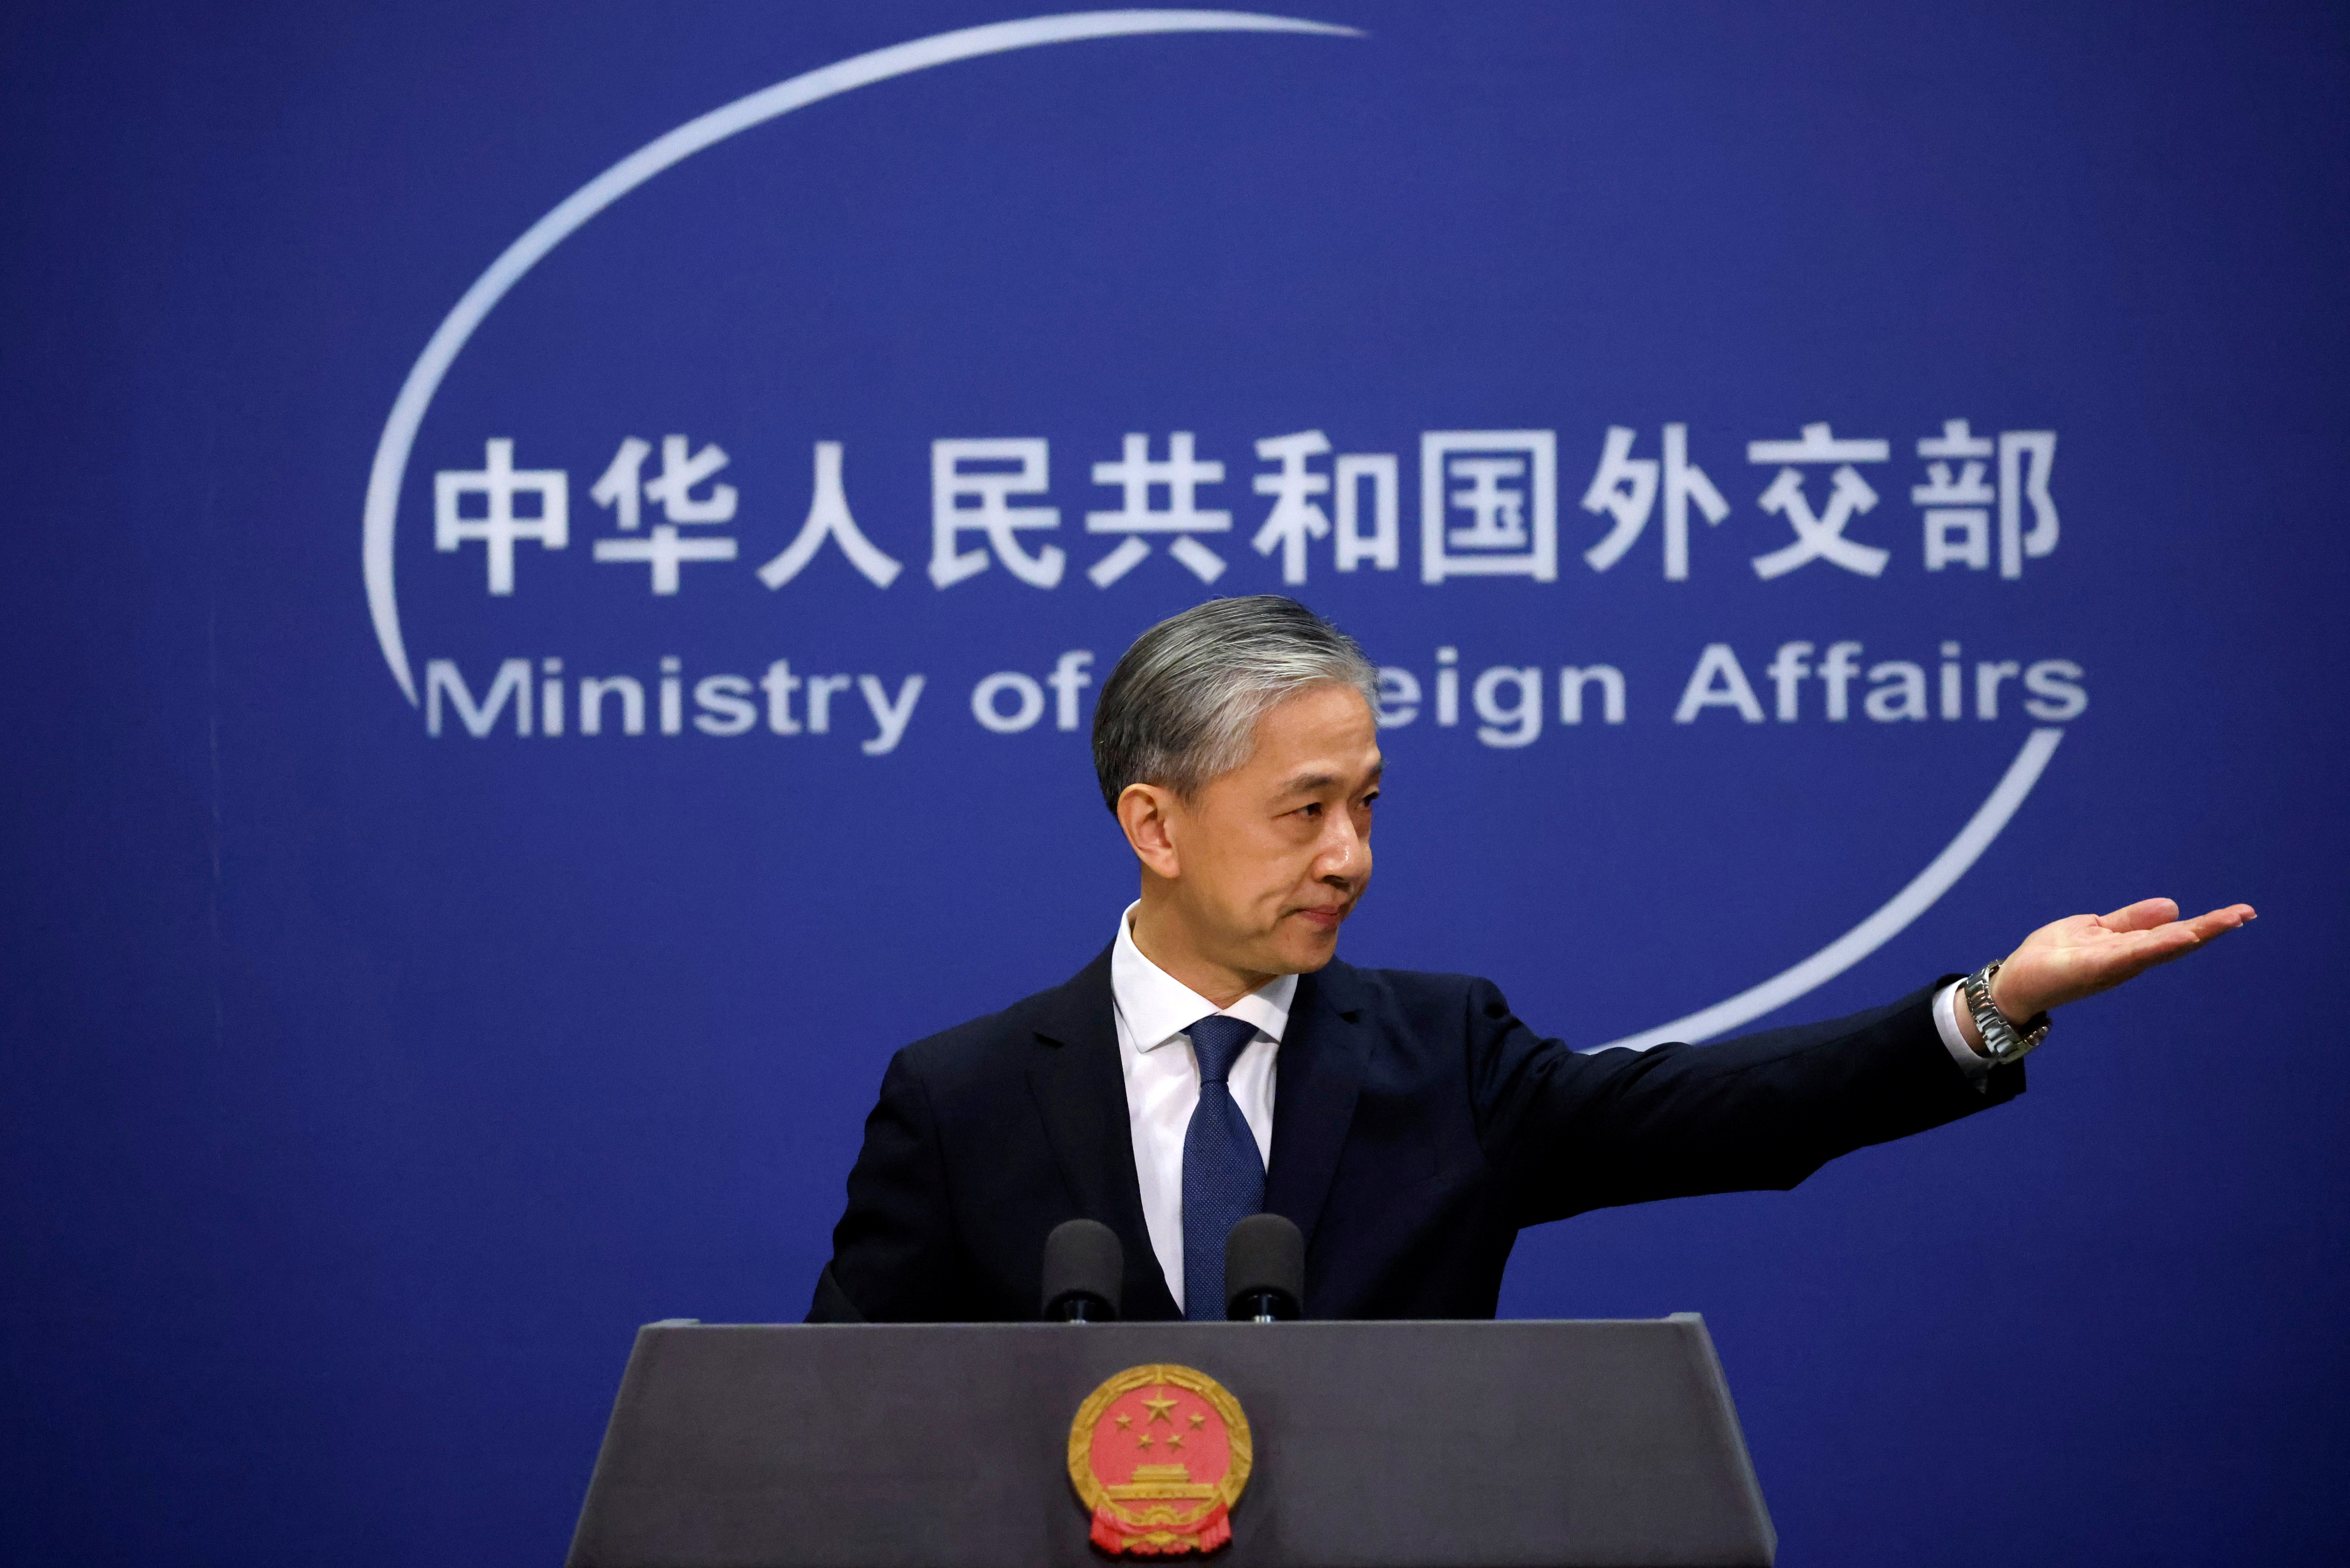 Chinese Foreign Ministry spokesman Wang Wenbin attends a news conference in Beijing, China December 14, 2020. REUTERS/Thomas Peter